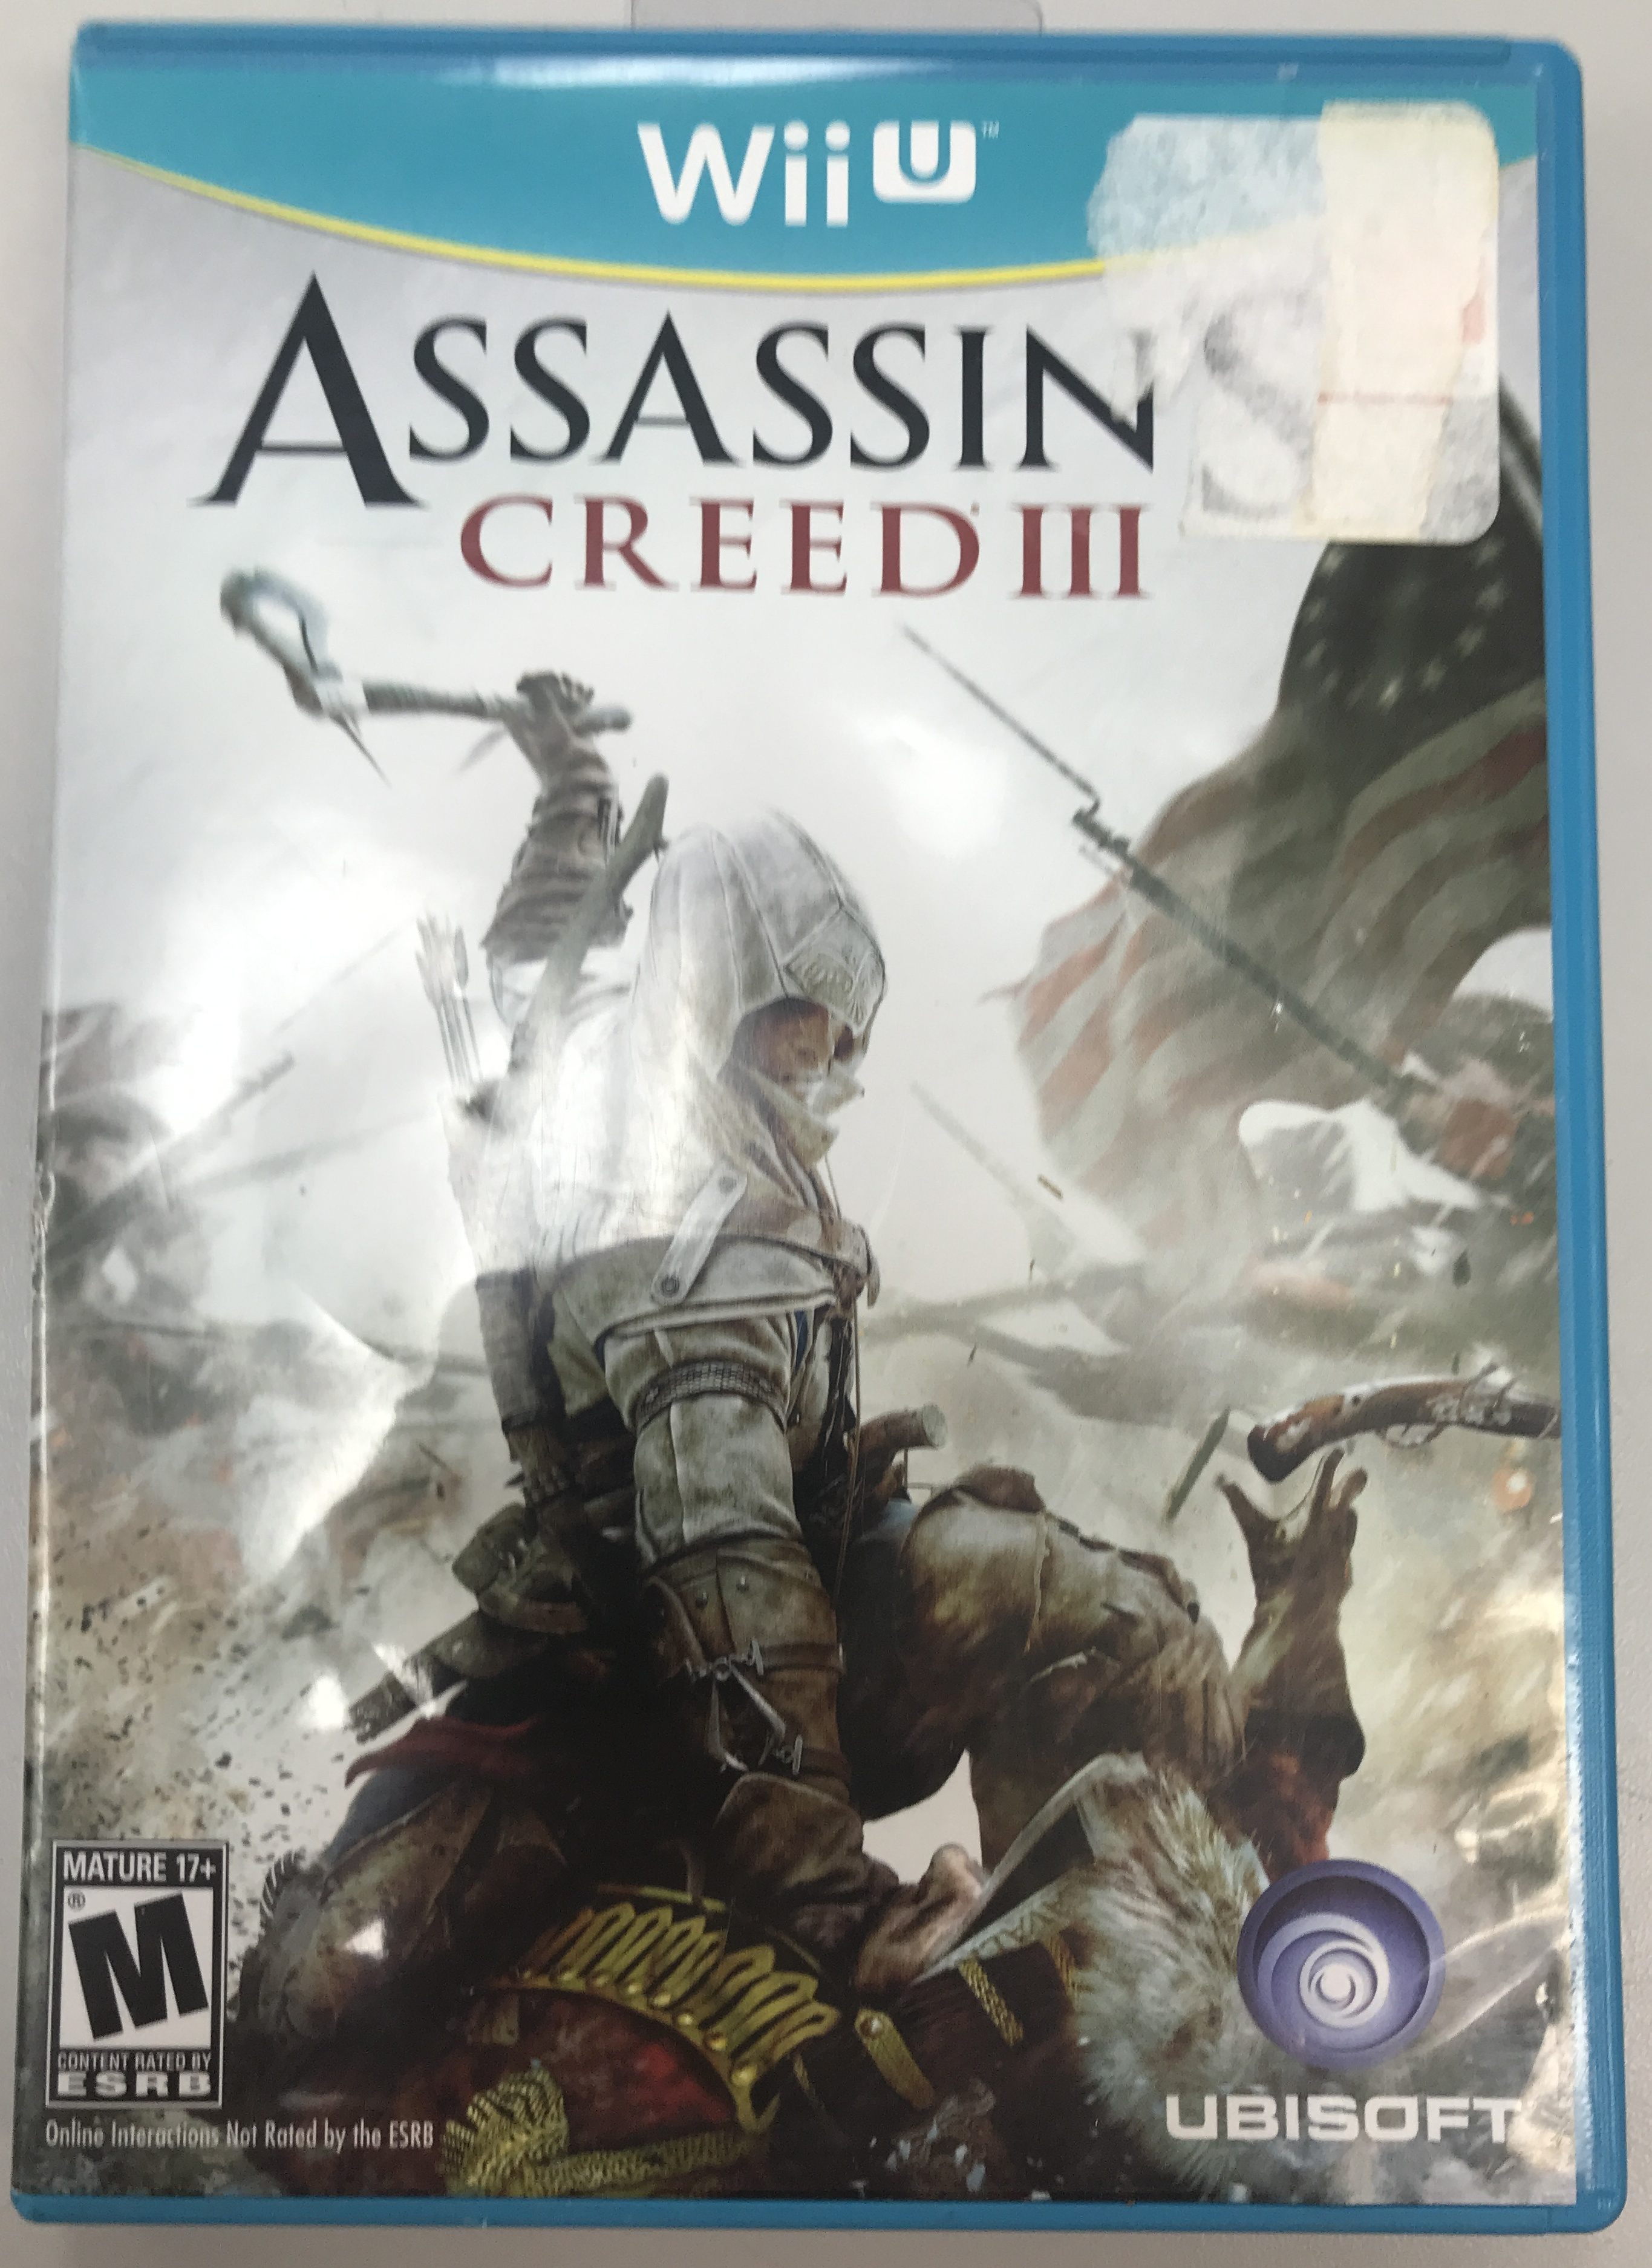 ASSASSIN'S CREED III WII U GAME